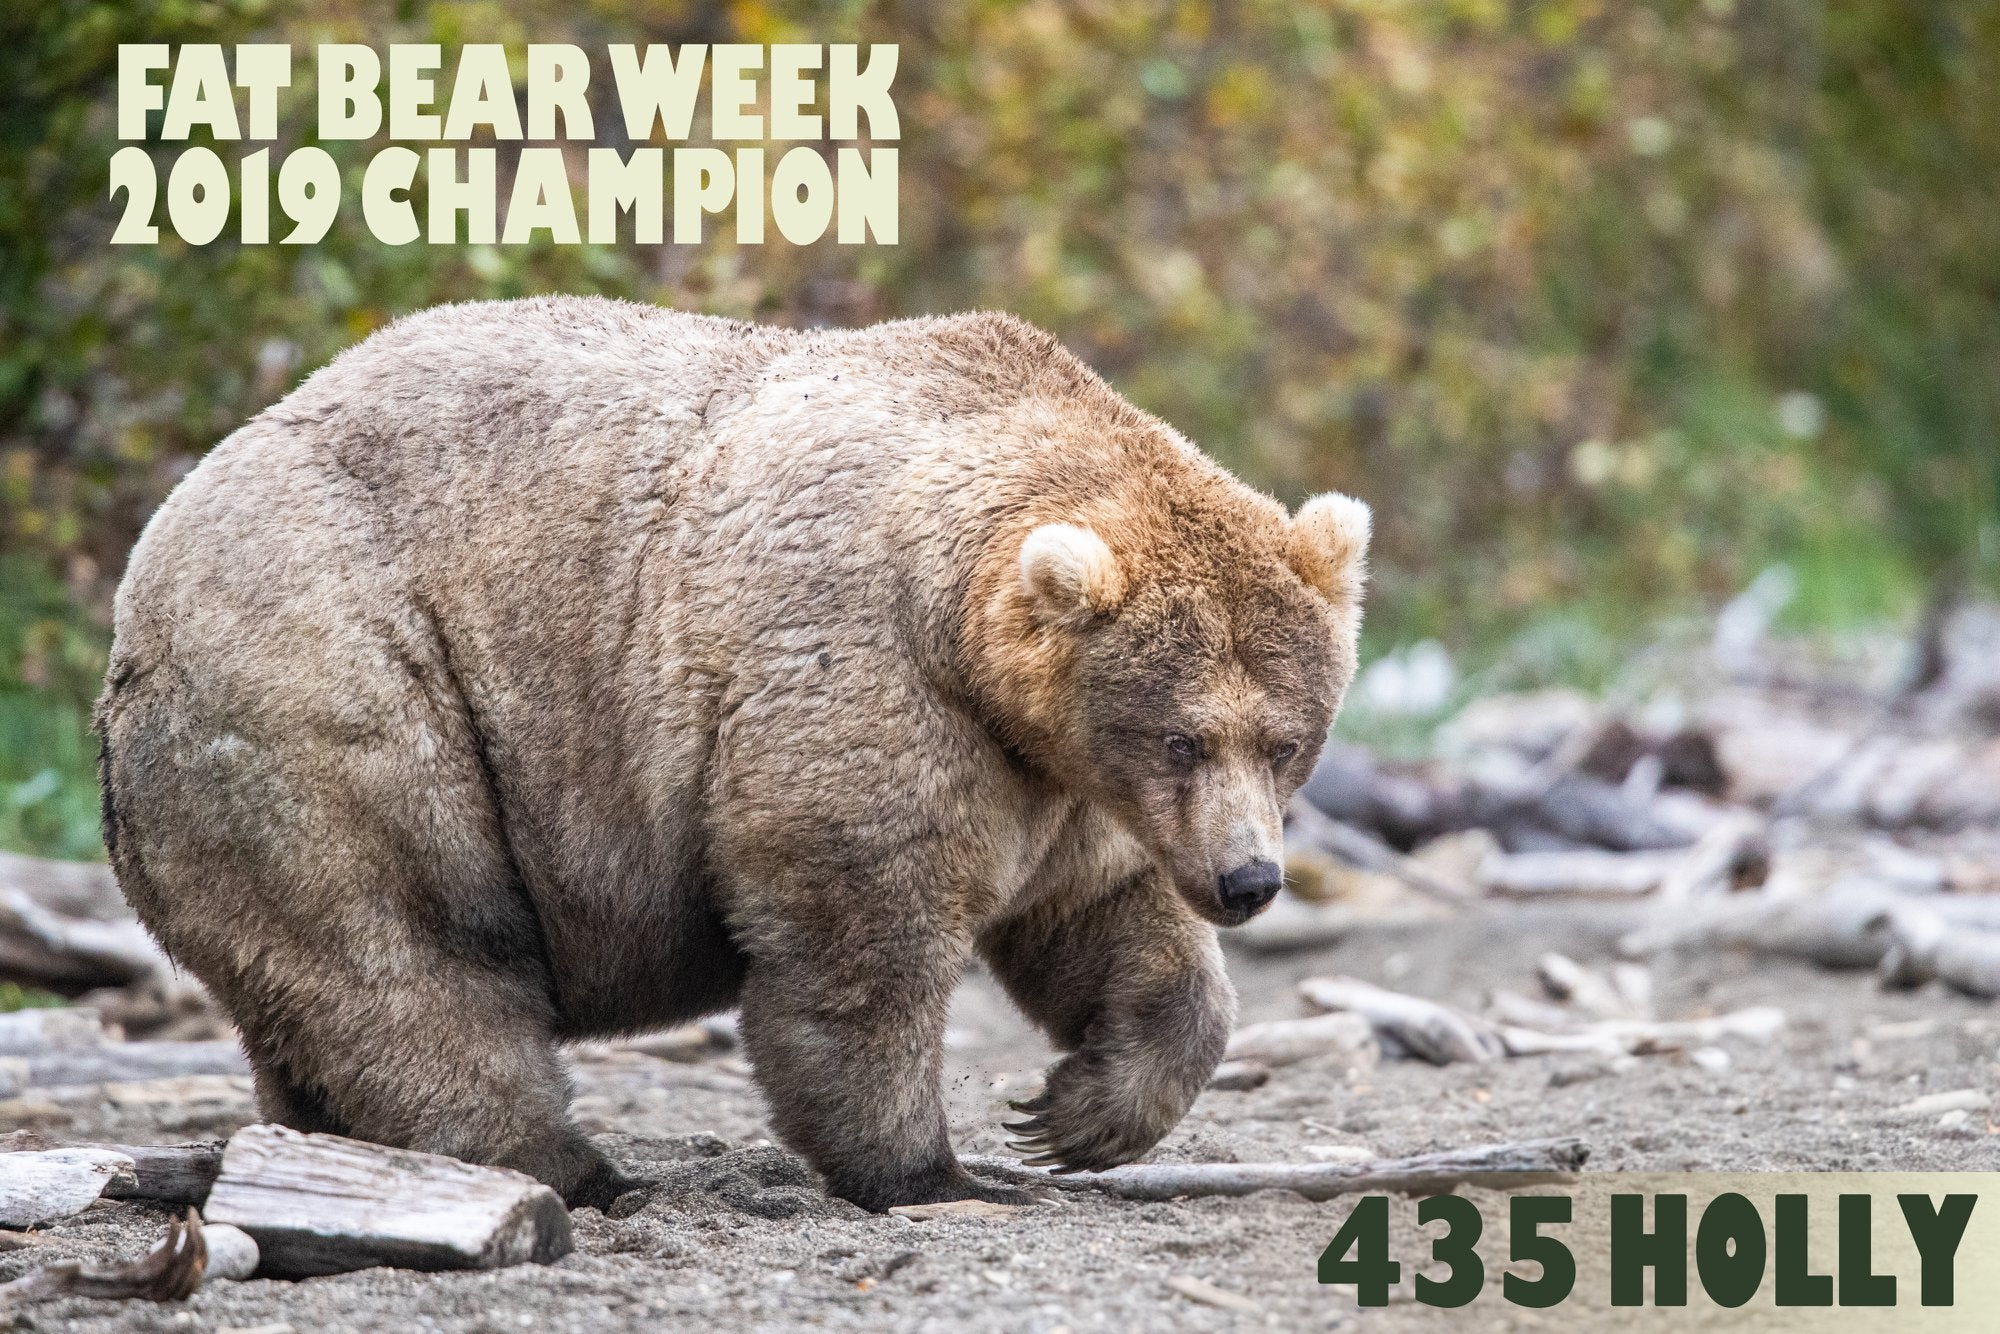 All hail Holly, the queen of Fat Bear Week